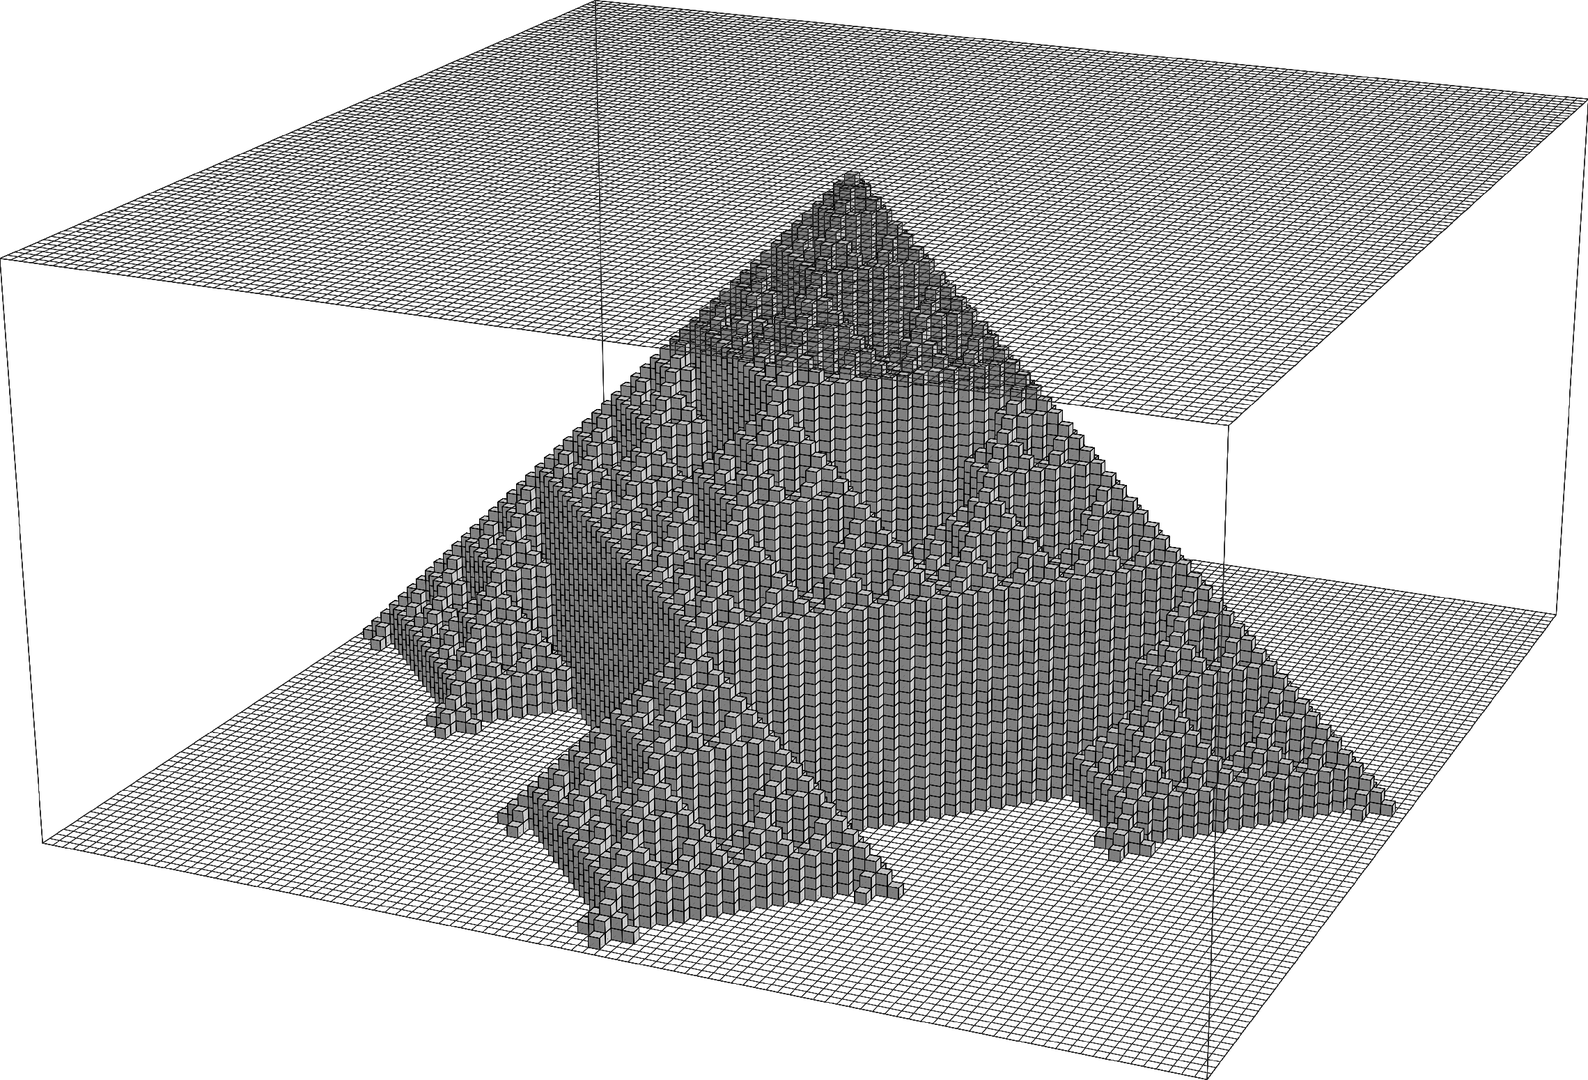 A three-dimensional object formed by stacking the two-dimensional patterns from the previous page